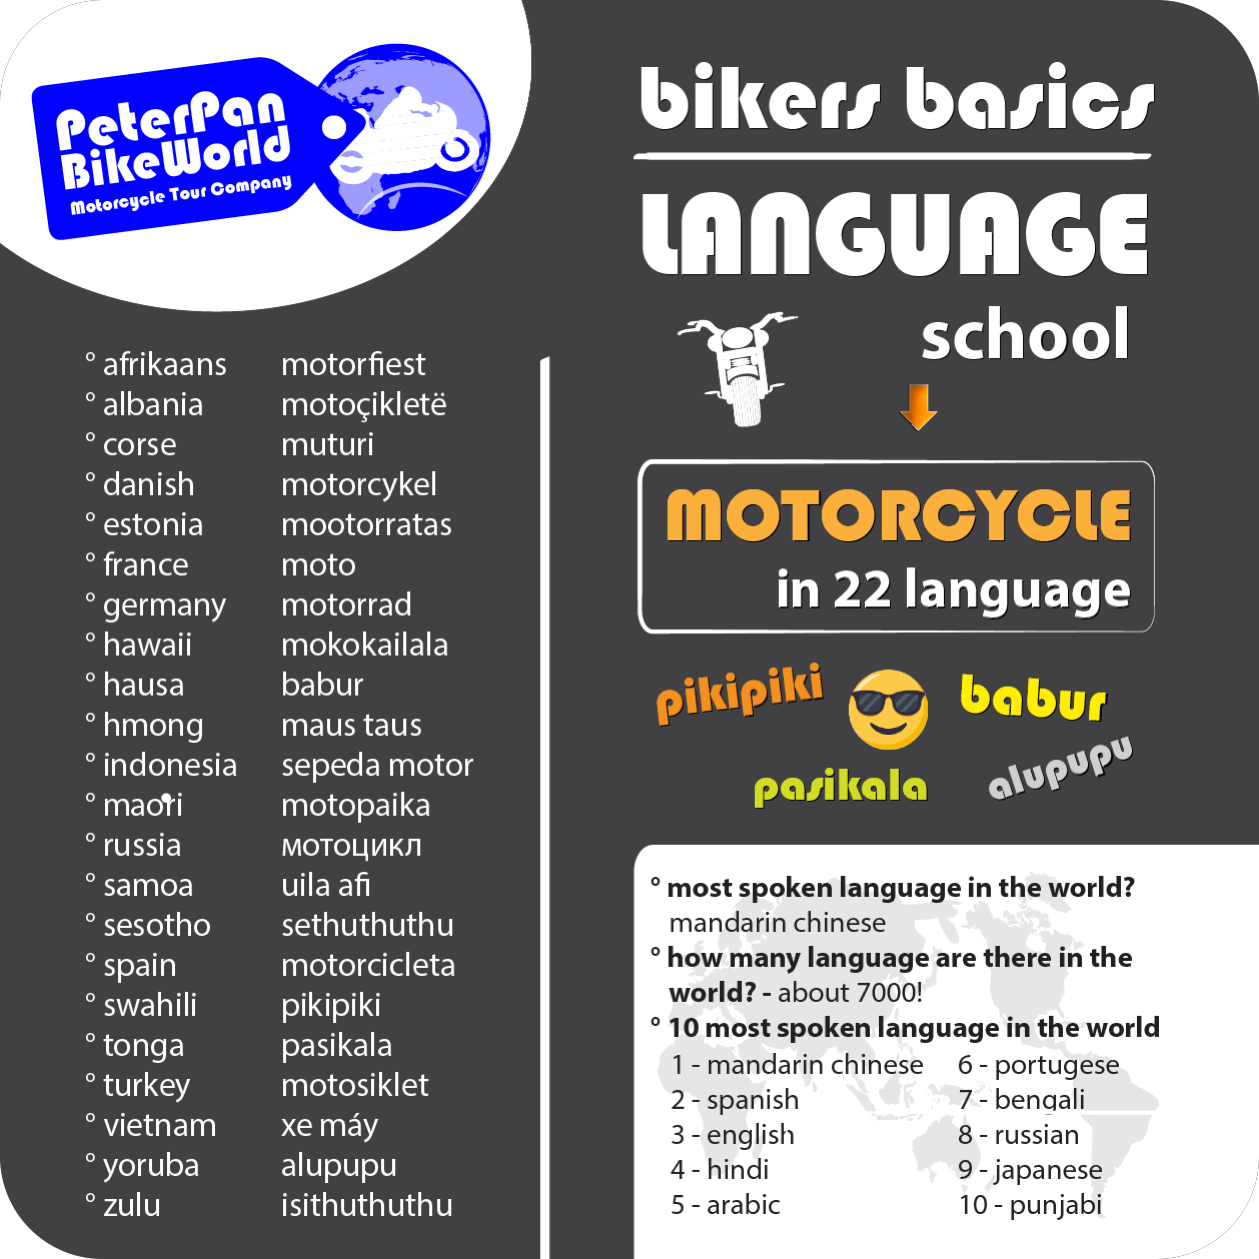 Bikers Basics - Language school. Motorcycle in 22 language!